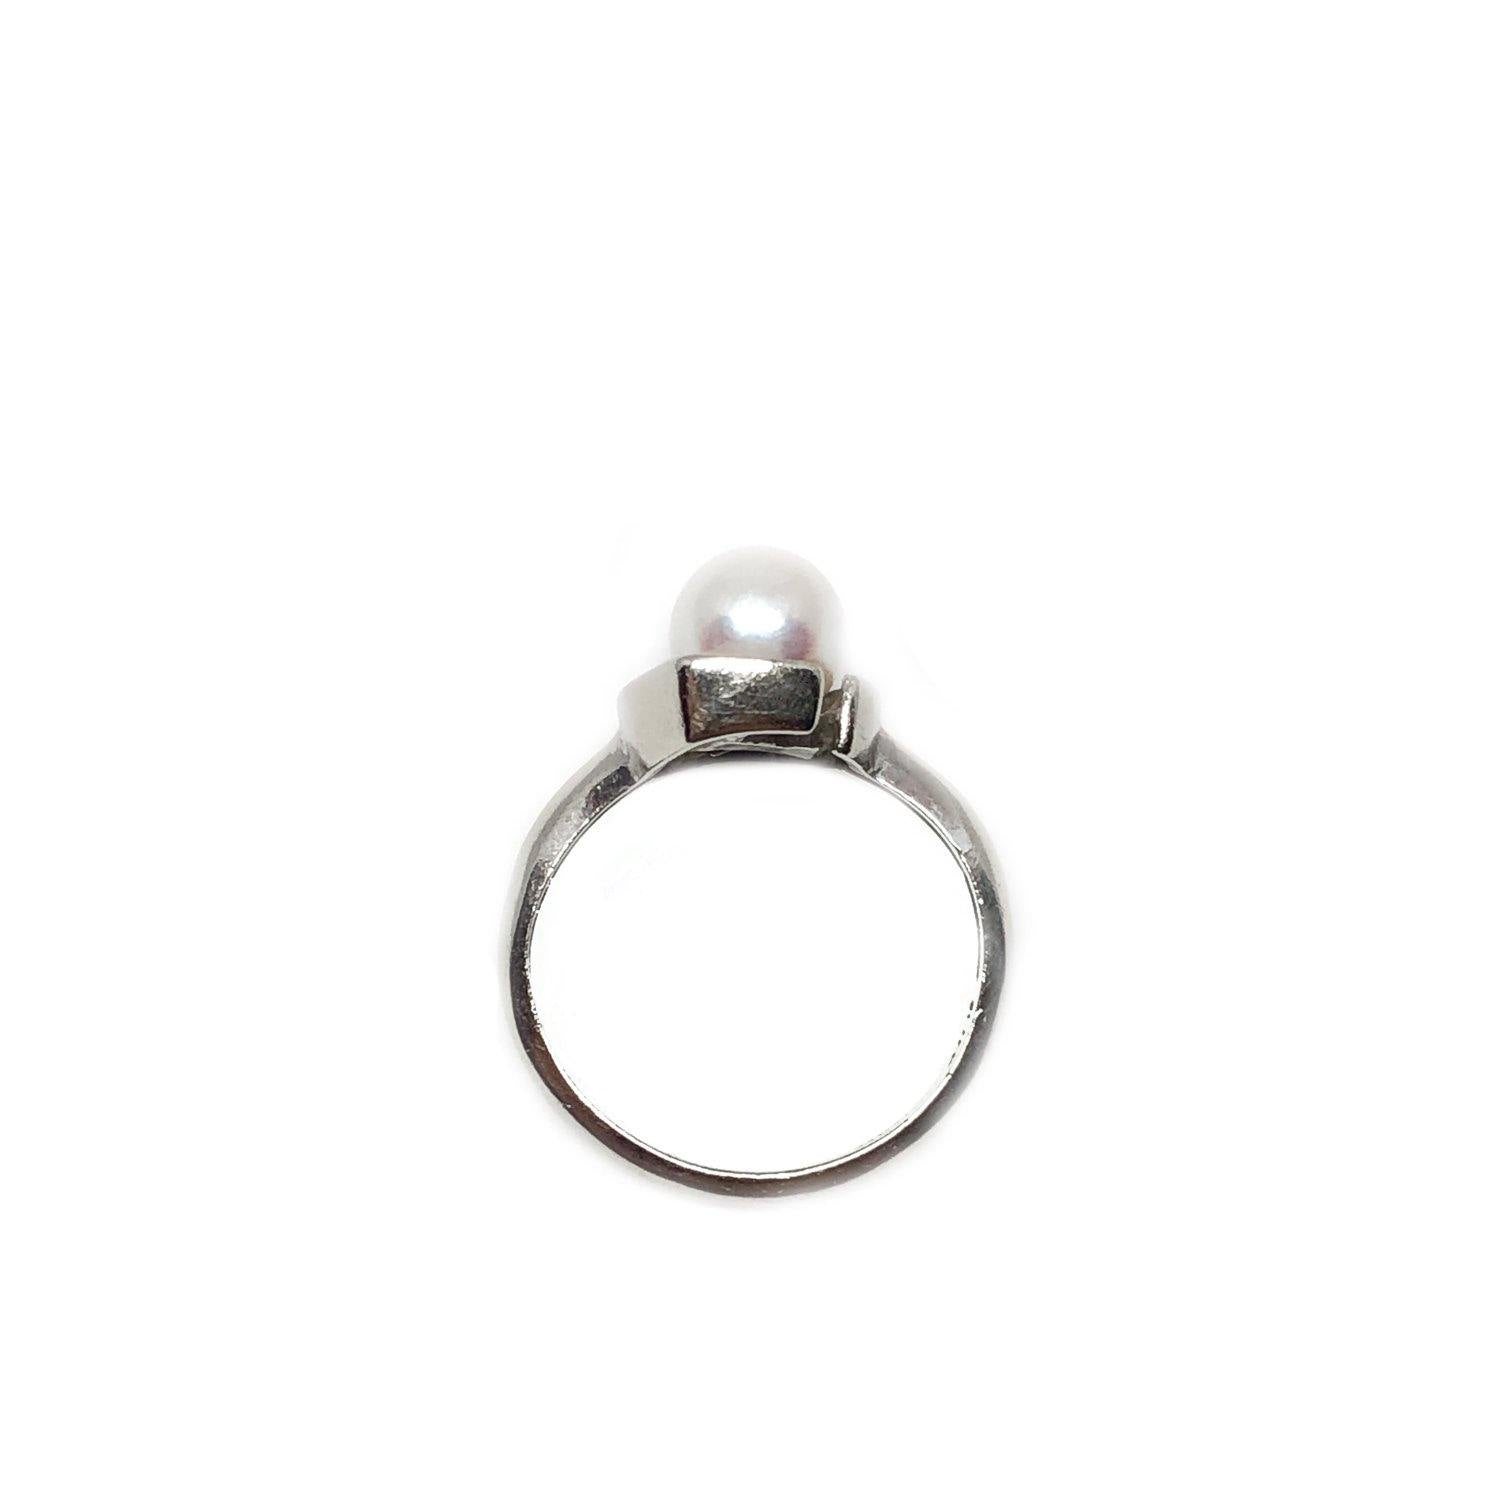 Retro Mid Century Japanese Saltwater Akoya Cultured Pearl Diamond Ring- 10K White Gold Size 4.50